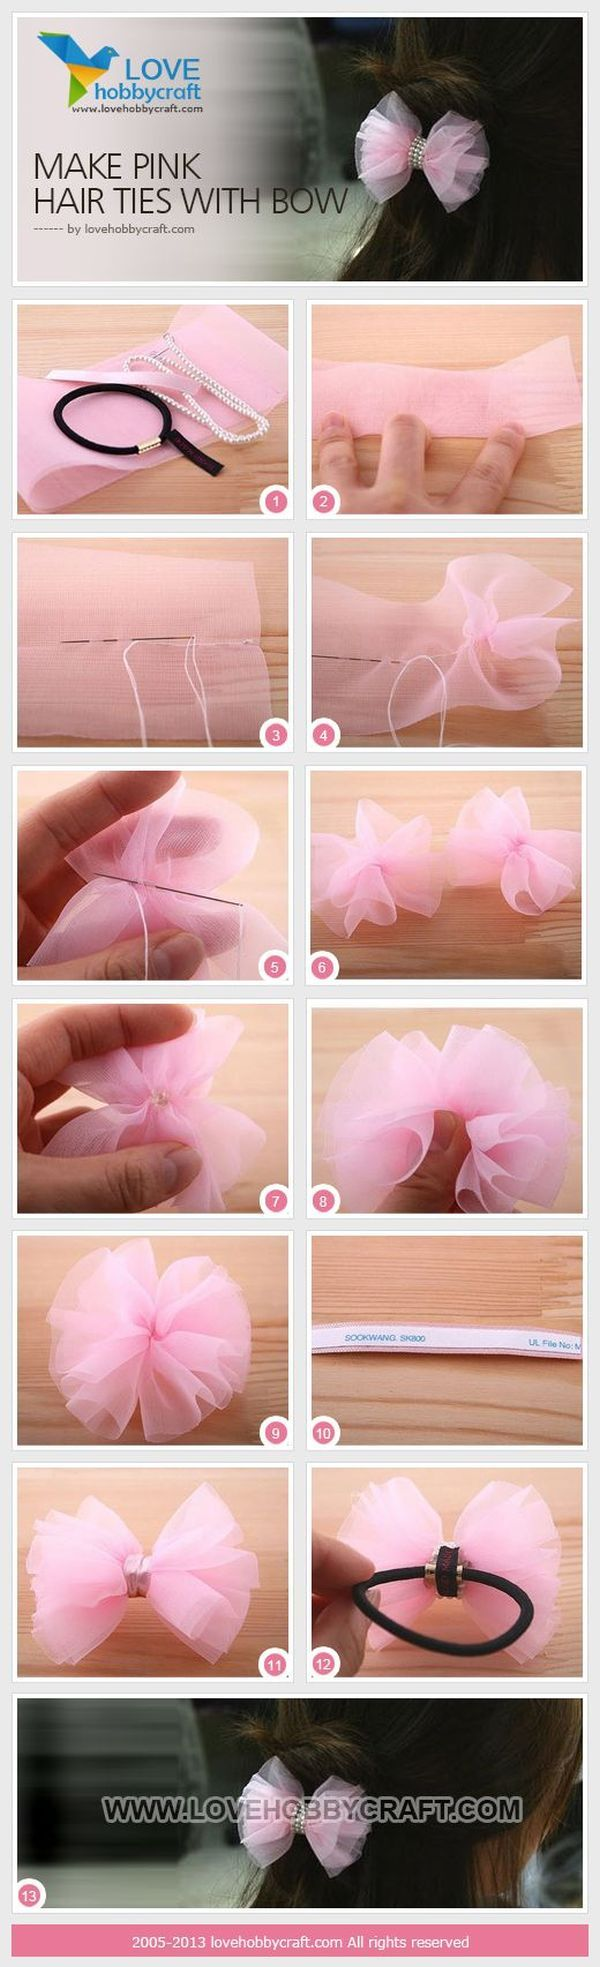 Bows are everywhere, whether you like it or not. You create bows when you tie your shoe laces, you put them in your hair, you decorate your gifts with them